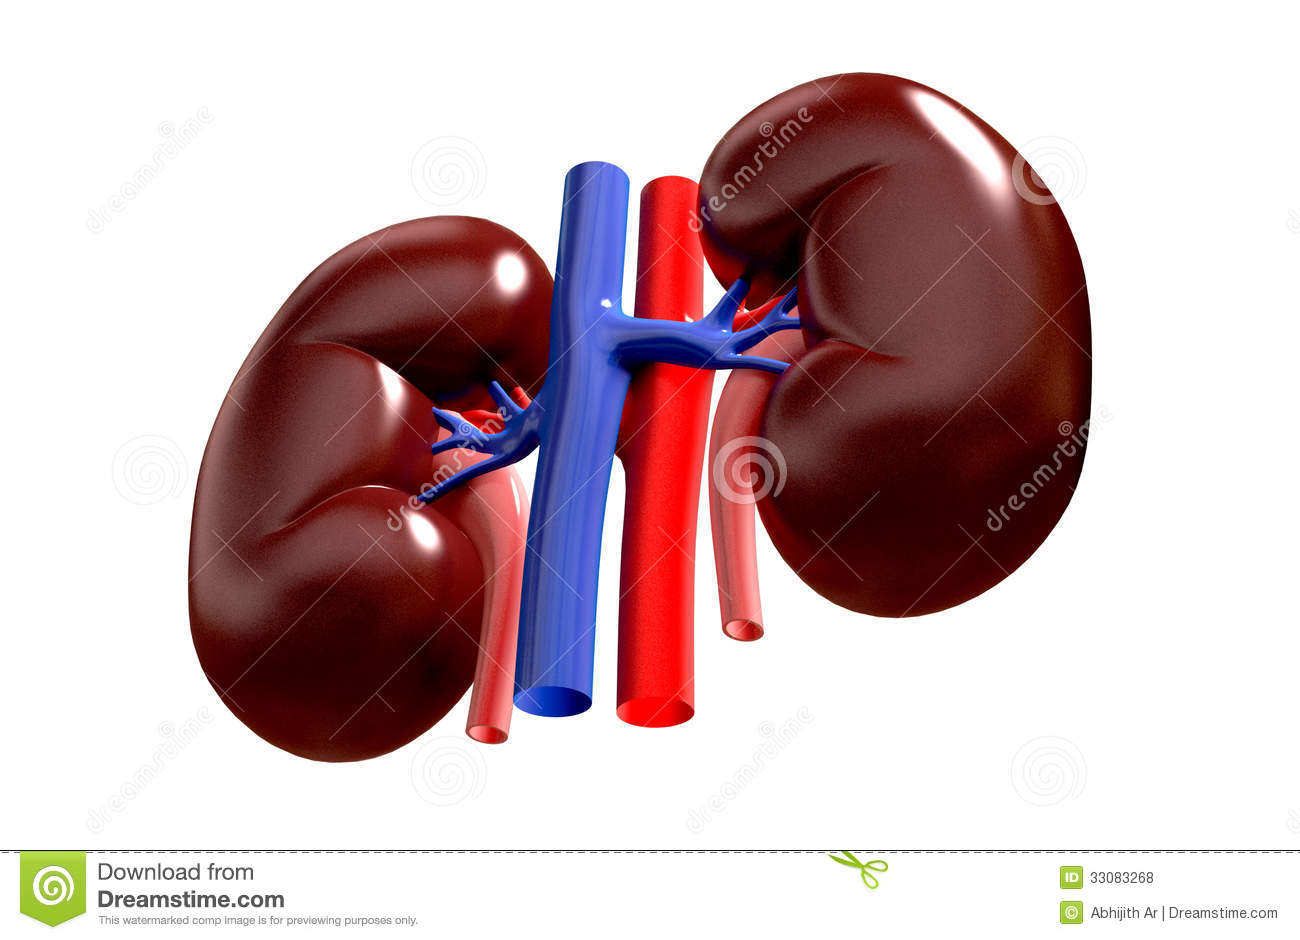 Royalty Free Stock Photos Human Kidney Digital Illustration Digital Background Image33083268